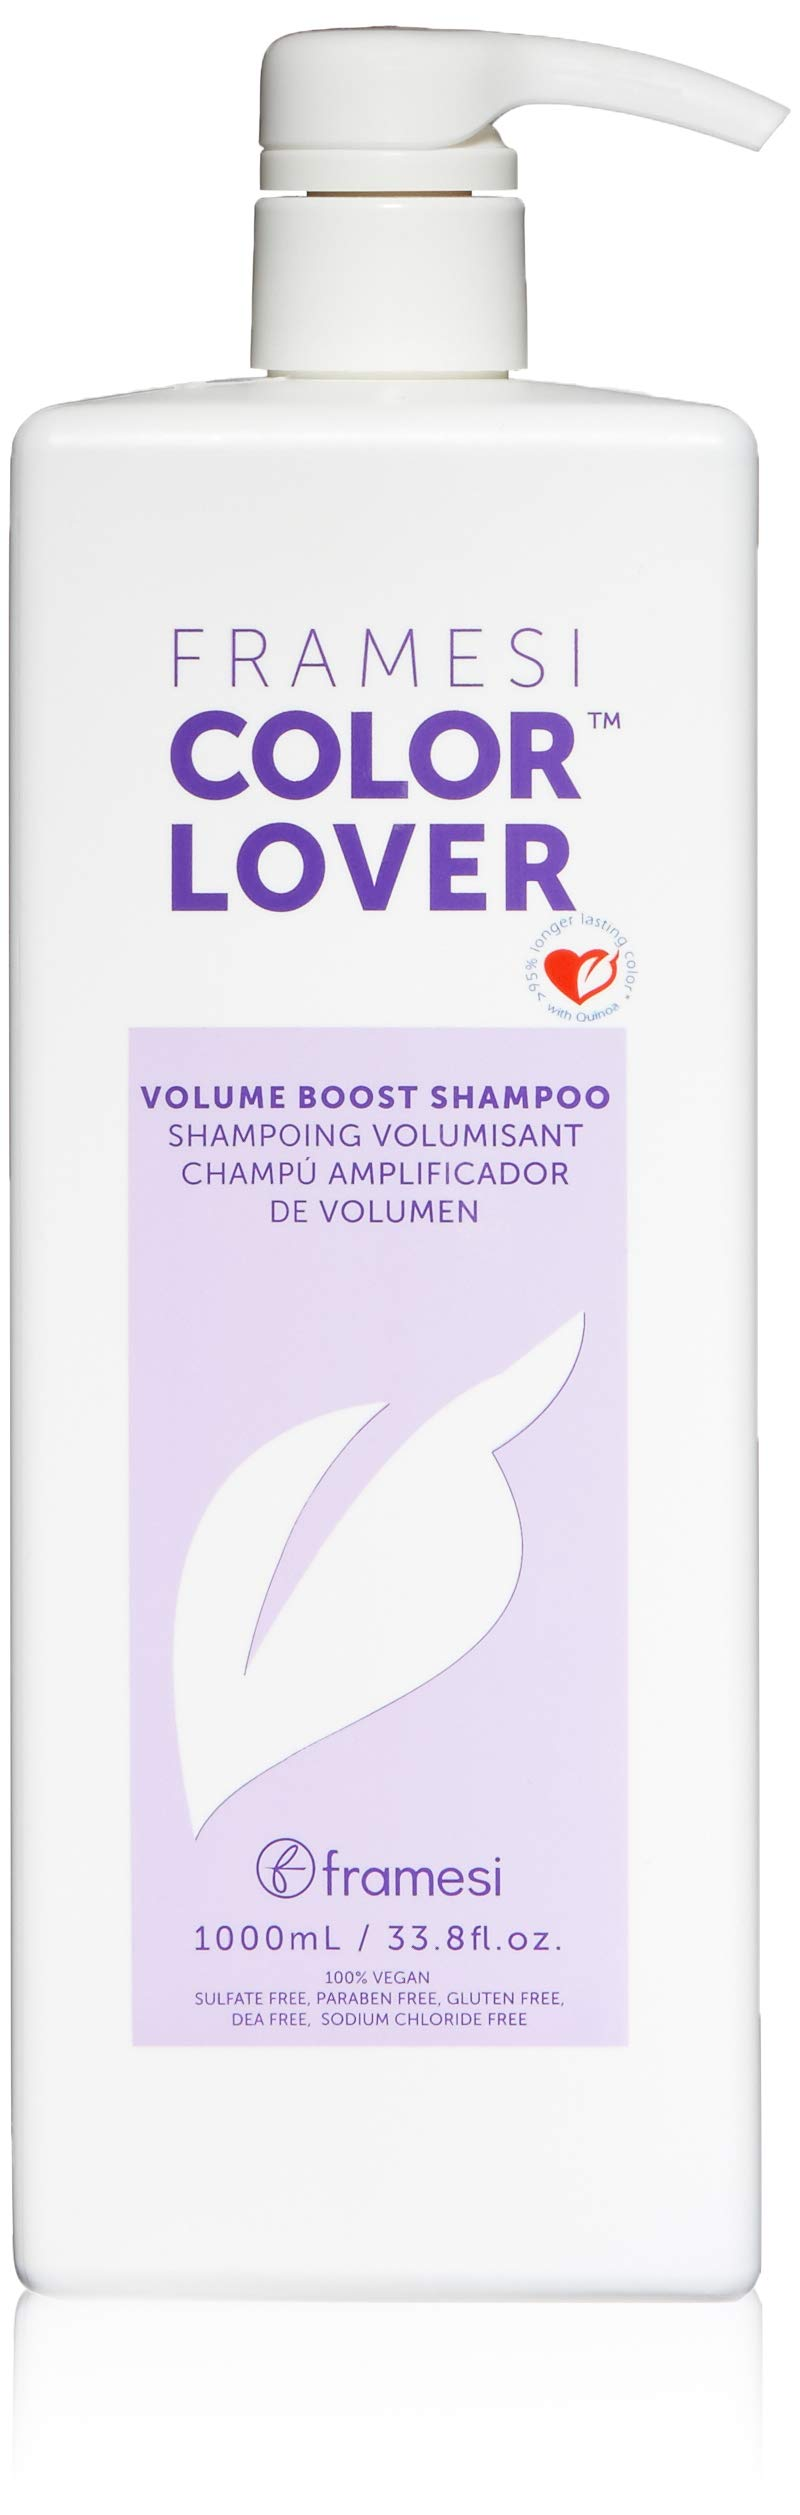 Framesi Color Lover Volume Boost Shampoo - 33.8 Ounce, Color Safe, Weightless, Volume Shampoo With No Sulfate, Vegan, Gluten Free, Cruelty Free by framesi